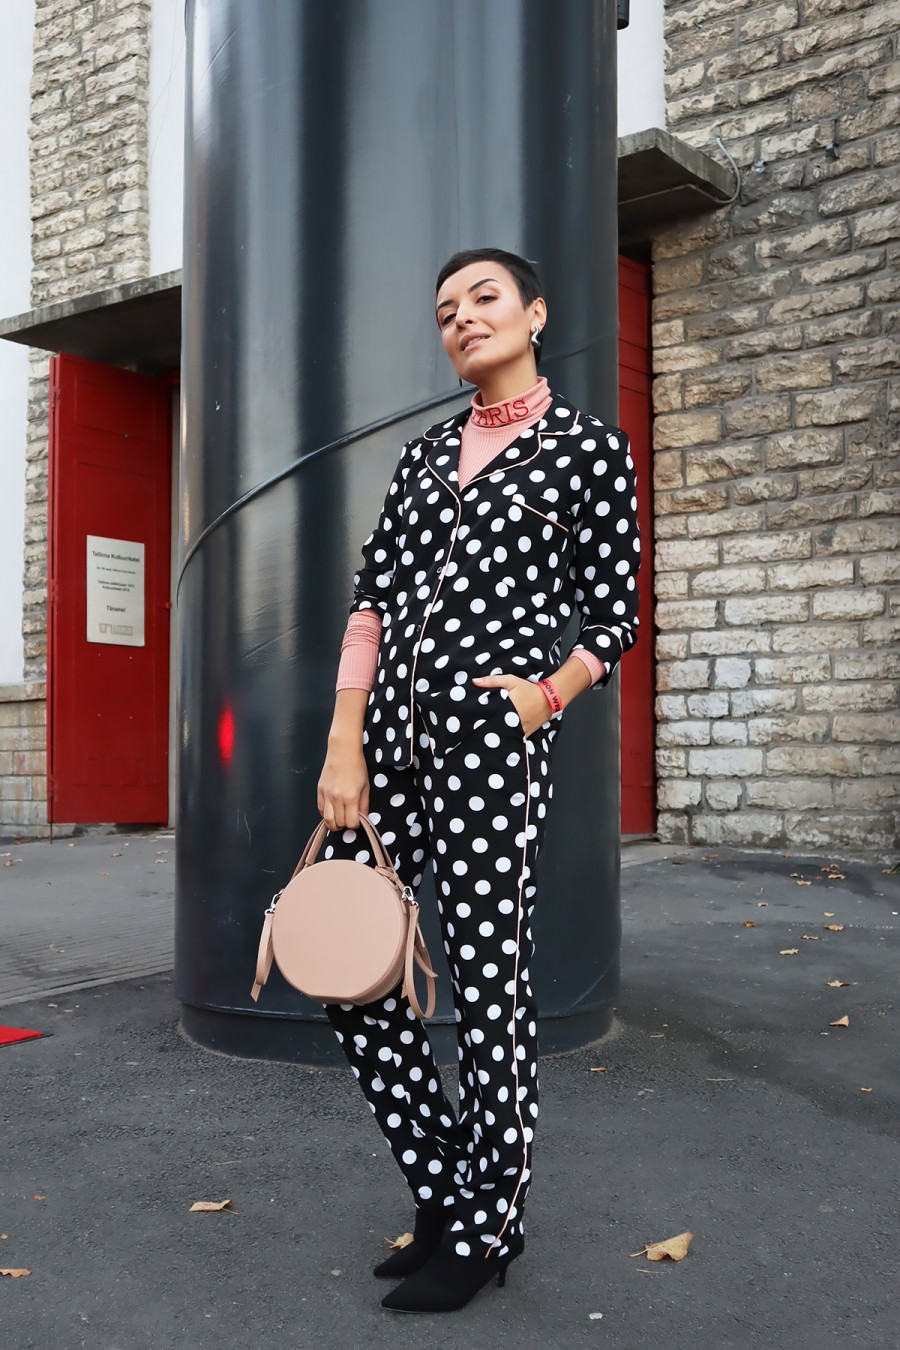 Dotted pajama outfit 2